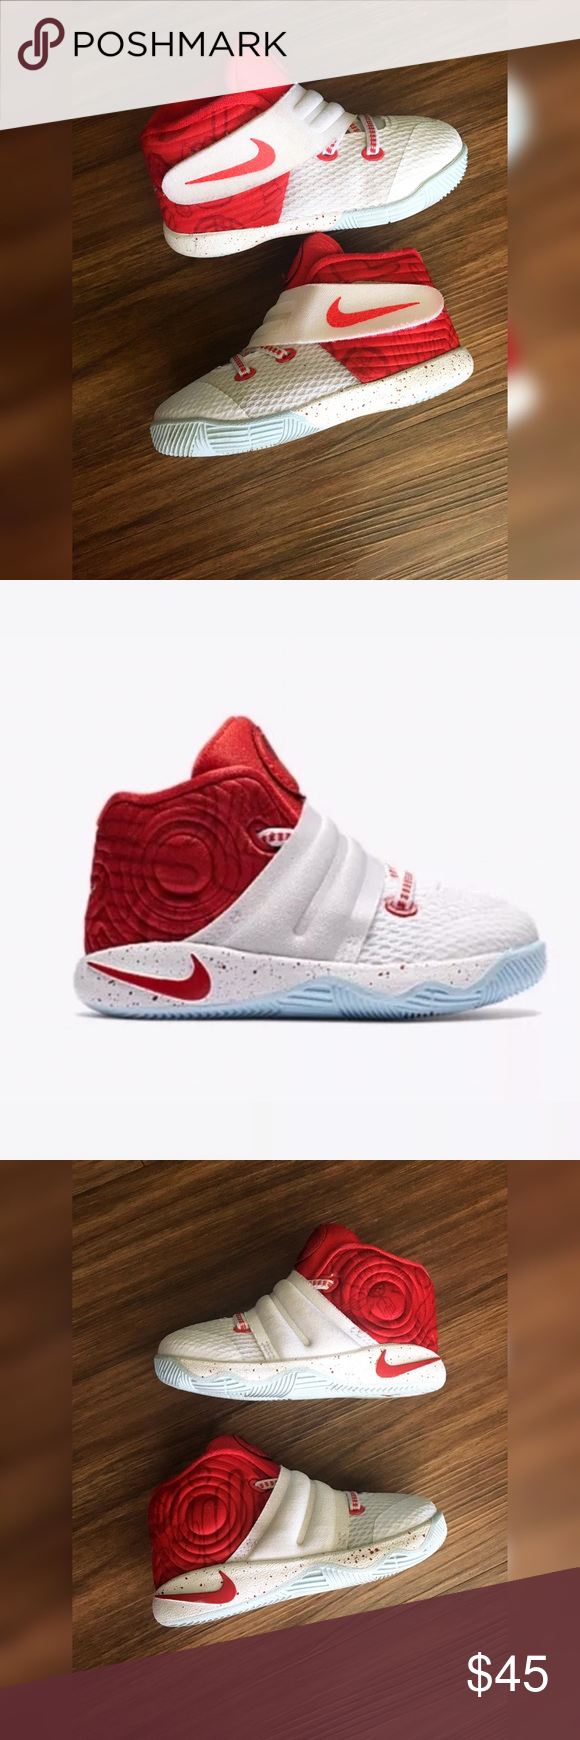 030ffb010e30 NEW Kyrie Irving 2 s Red White Toddler 6C Great condition no signs of wear  at all Clean inside and out Size 6C Basketball shoes New Nike Shoes Sneakers